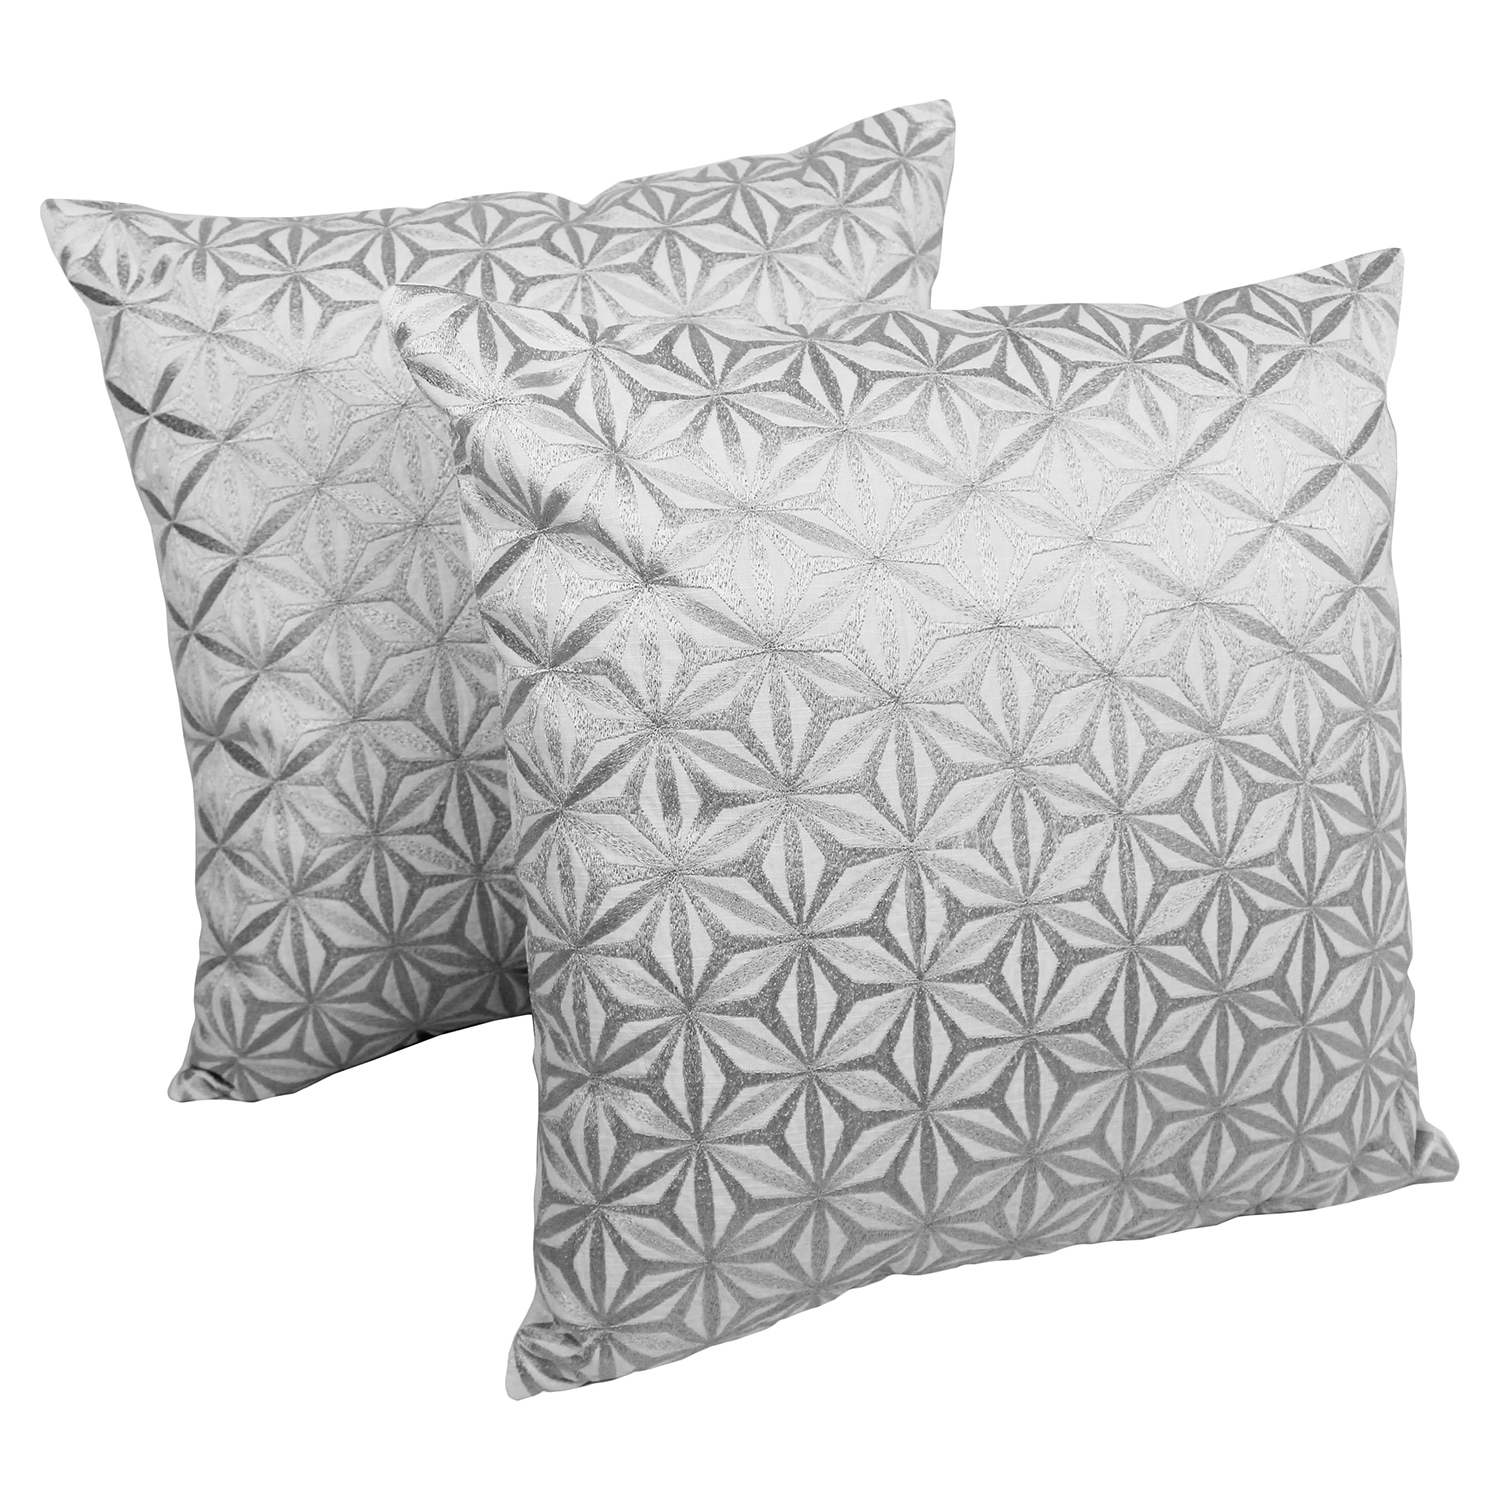 "Diamond Mosaic 20"" Throw Pillows - Silver Embroidery and Ivory Fabric (Set of 2)"